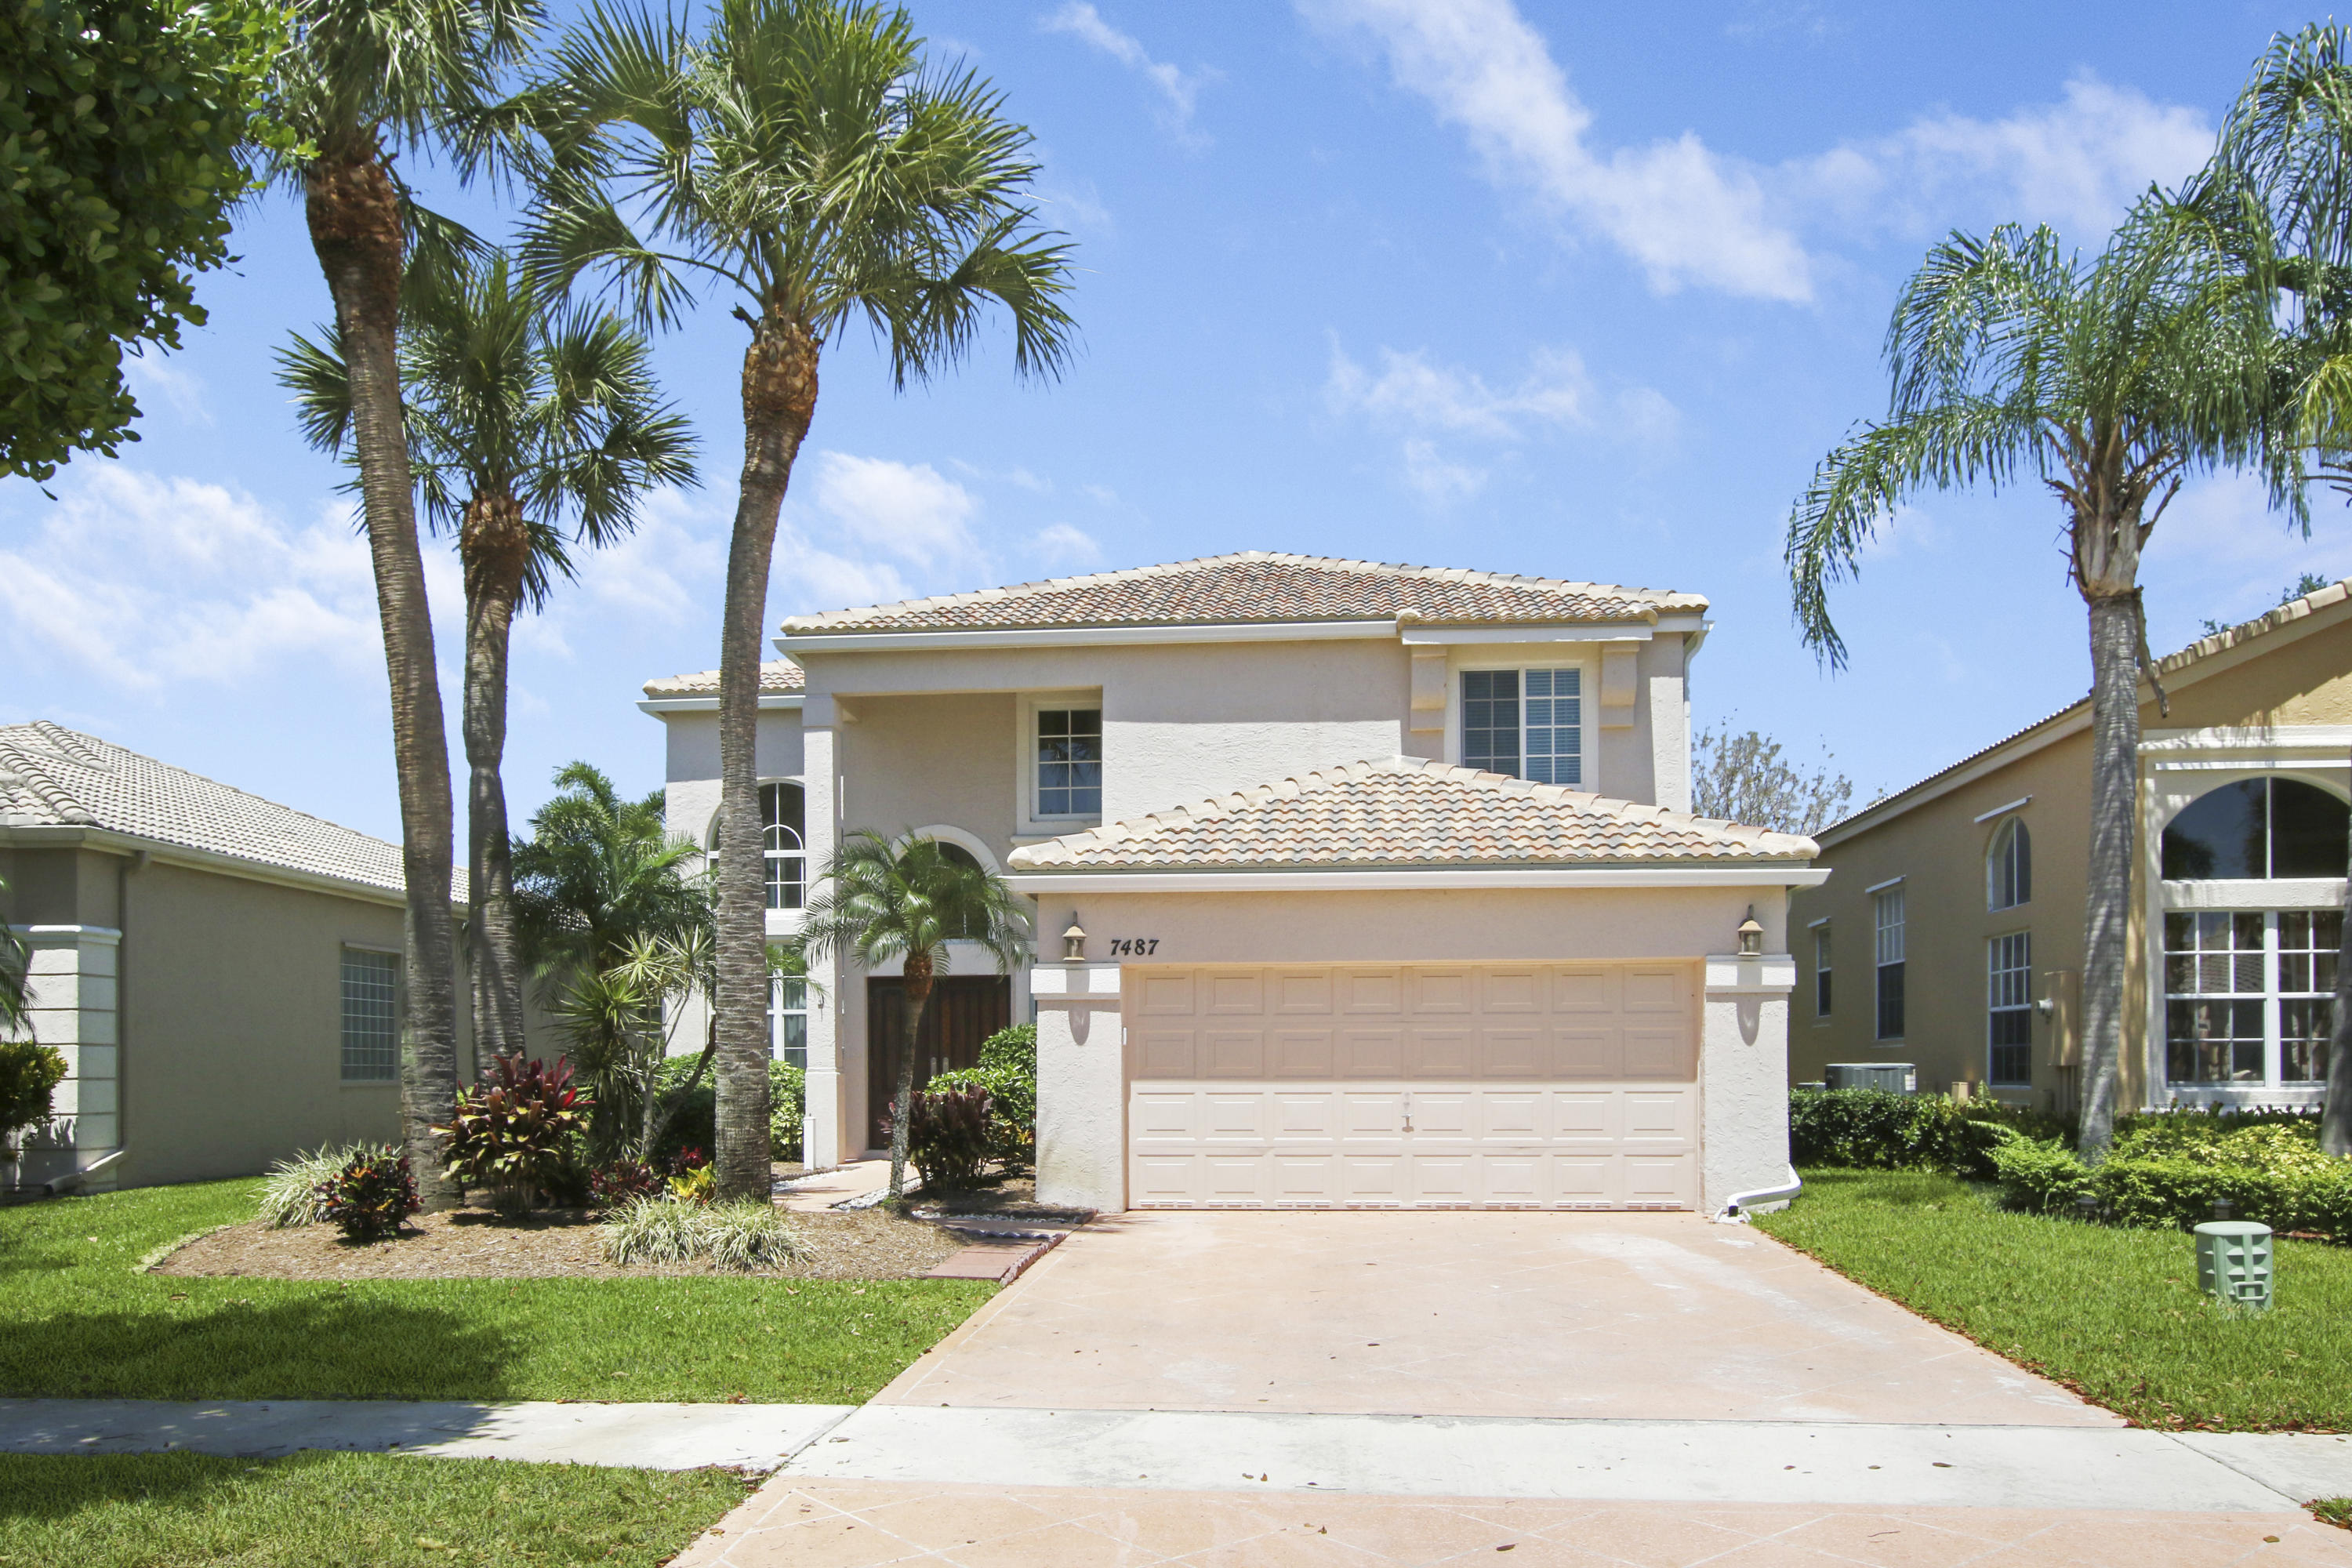 Home for sale in Candlewood Lake Worth Florida